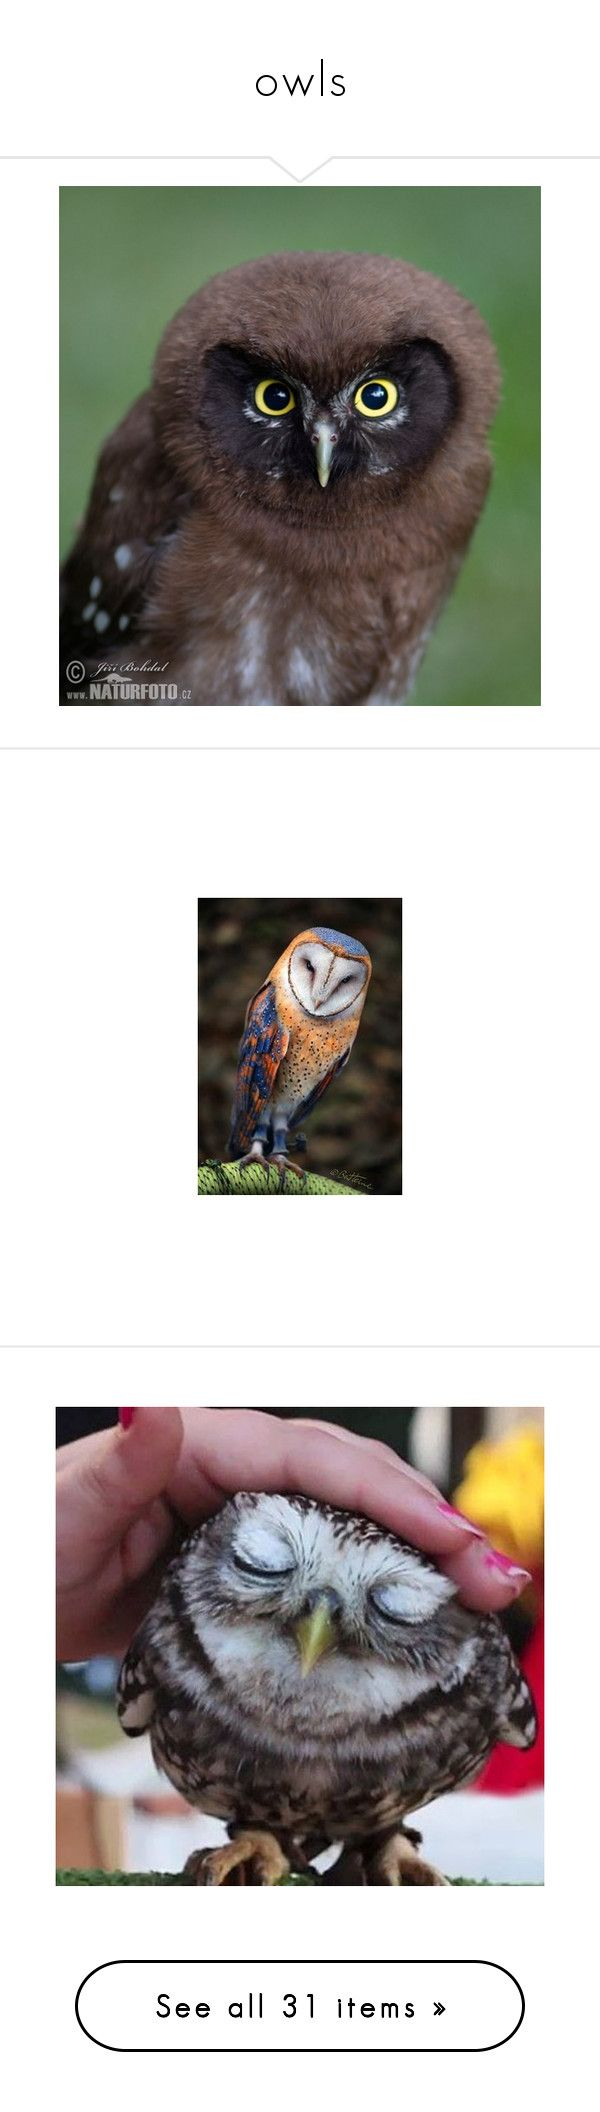 """""""owls"""" by valaquenta ❤ liked on Polyvore featuring animals, beauty products, home, home decor, owl home accessories, brinley co, owl home decor, wall art, zen home decor and owl wall art"""